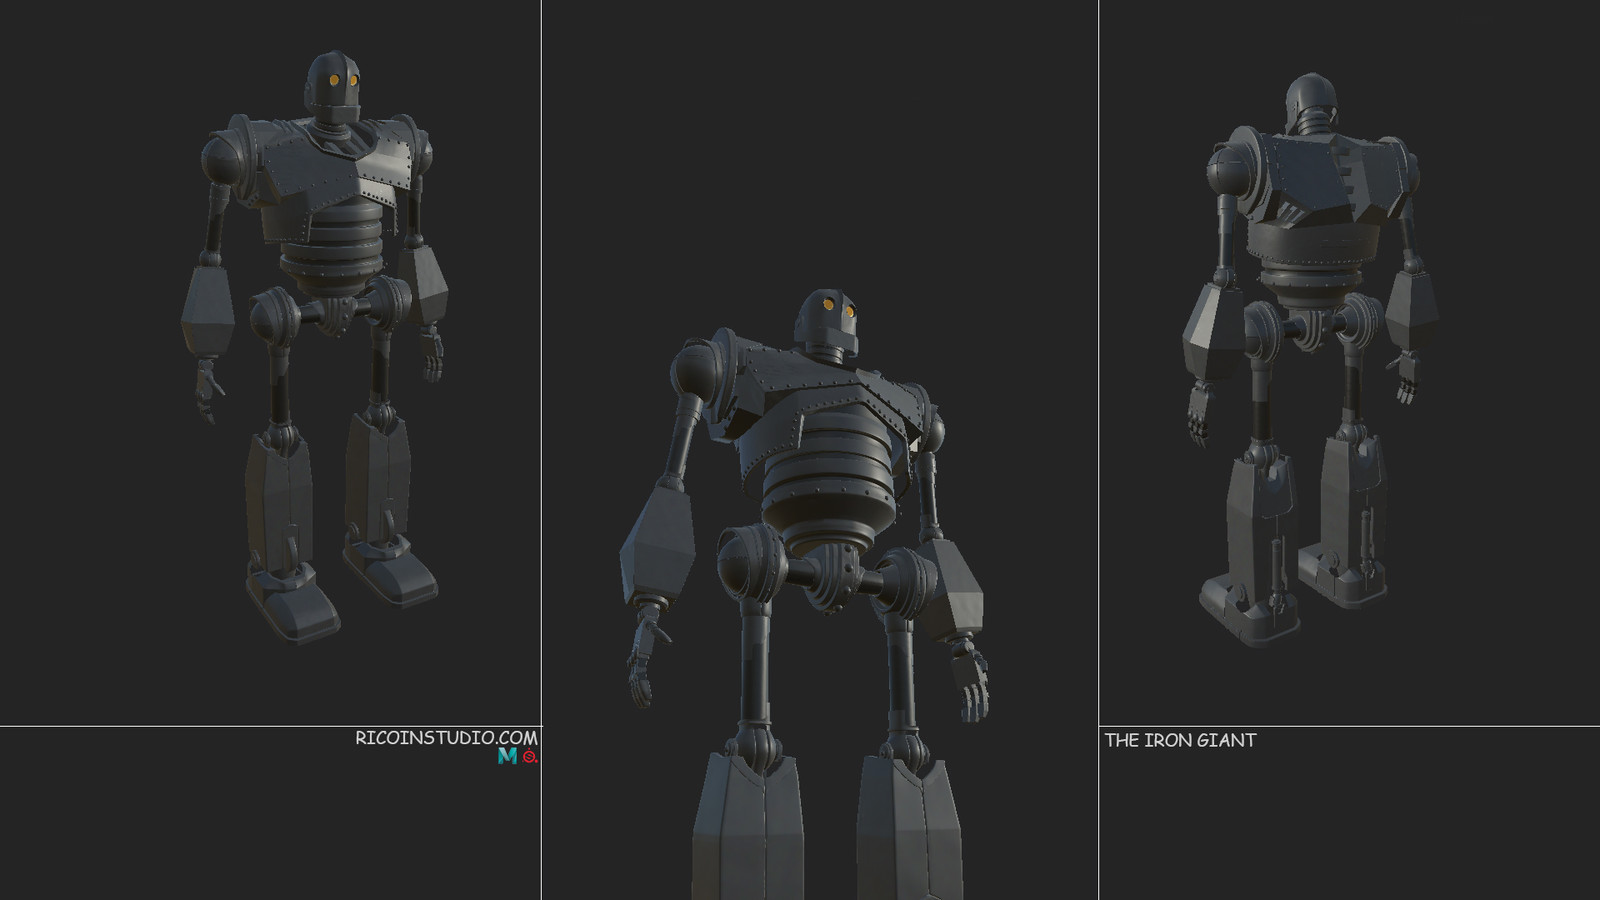 The Iron Giant - Preview